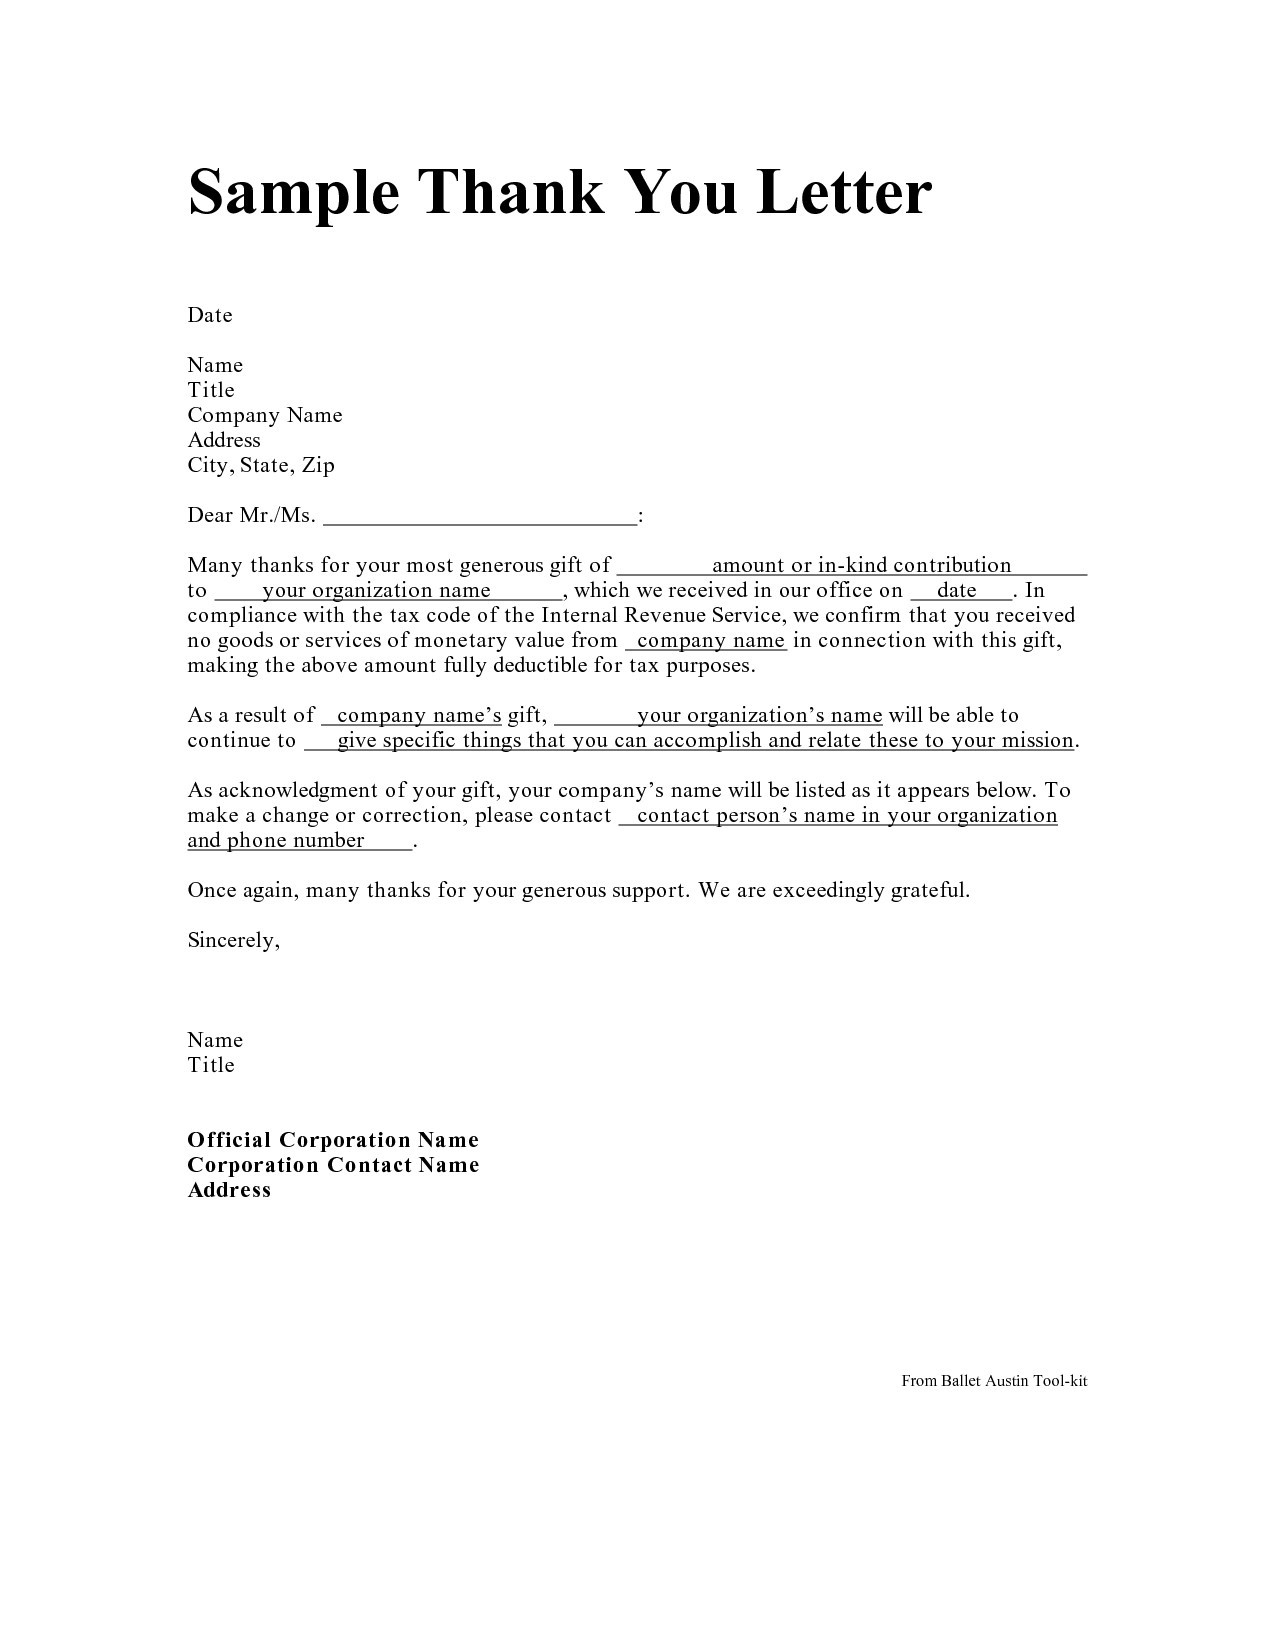 Compliance Letter Template - Pliance Statement Template